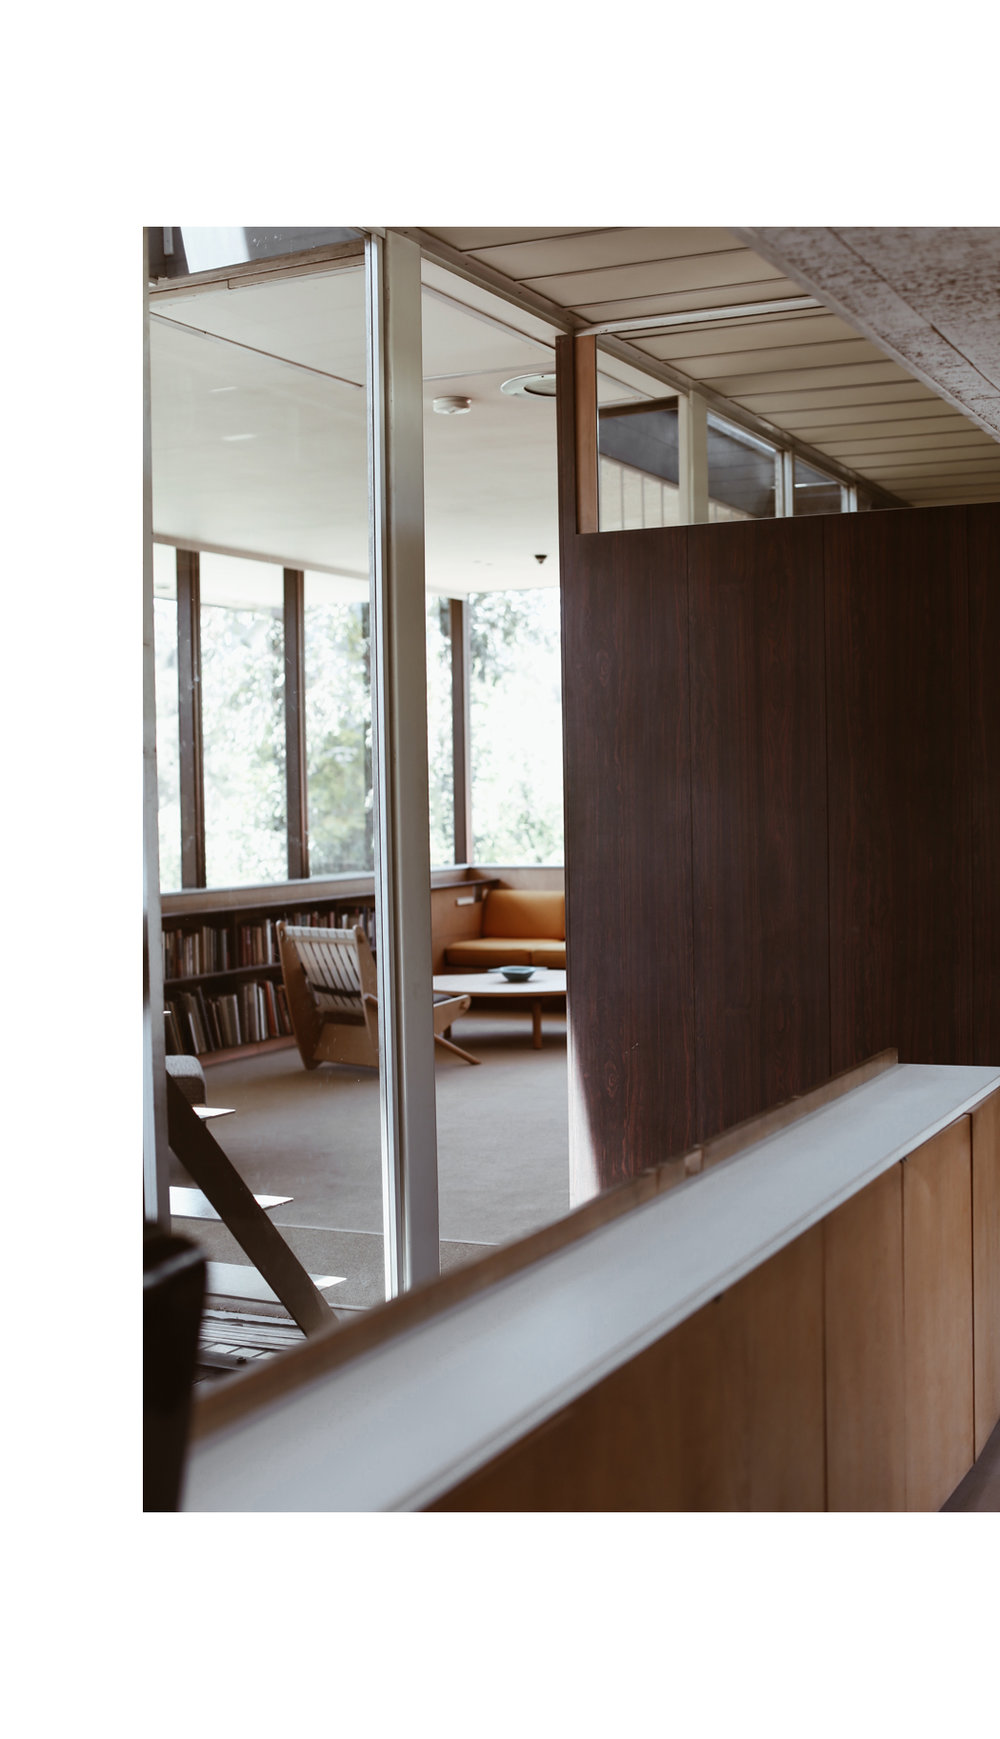 richard-neutra-vdl-studio-and-residences-silver-lake-los-angeles-california-12.jpg